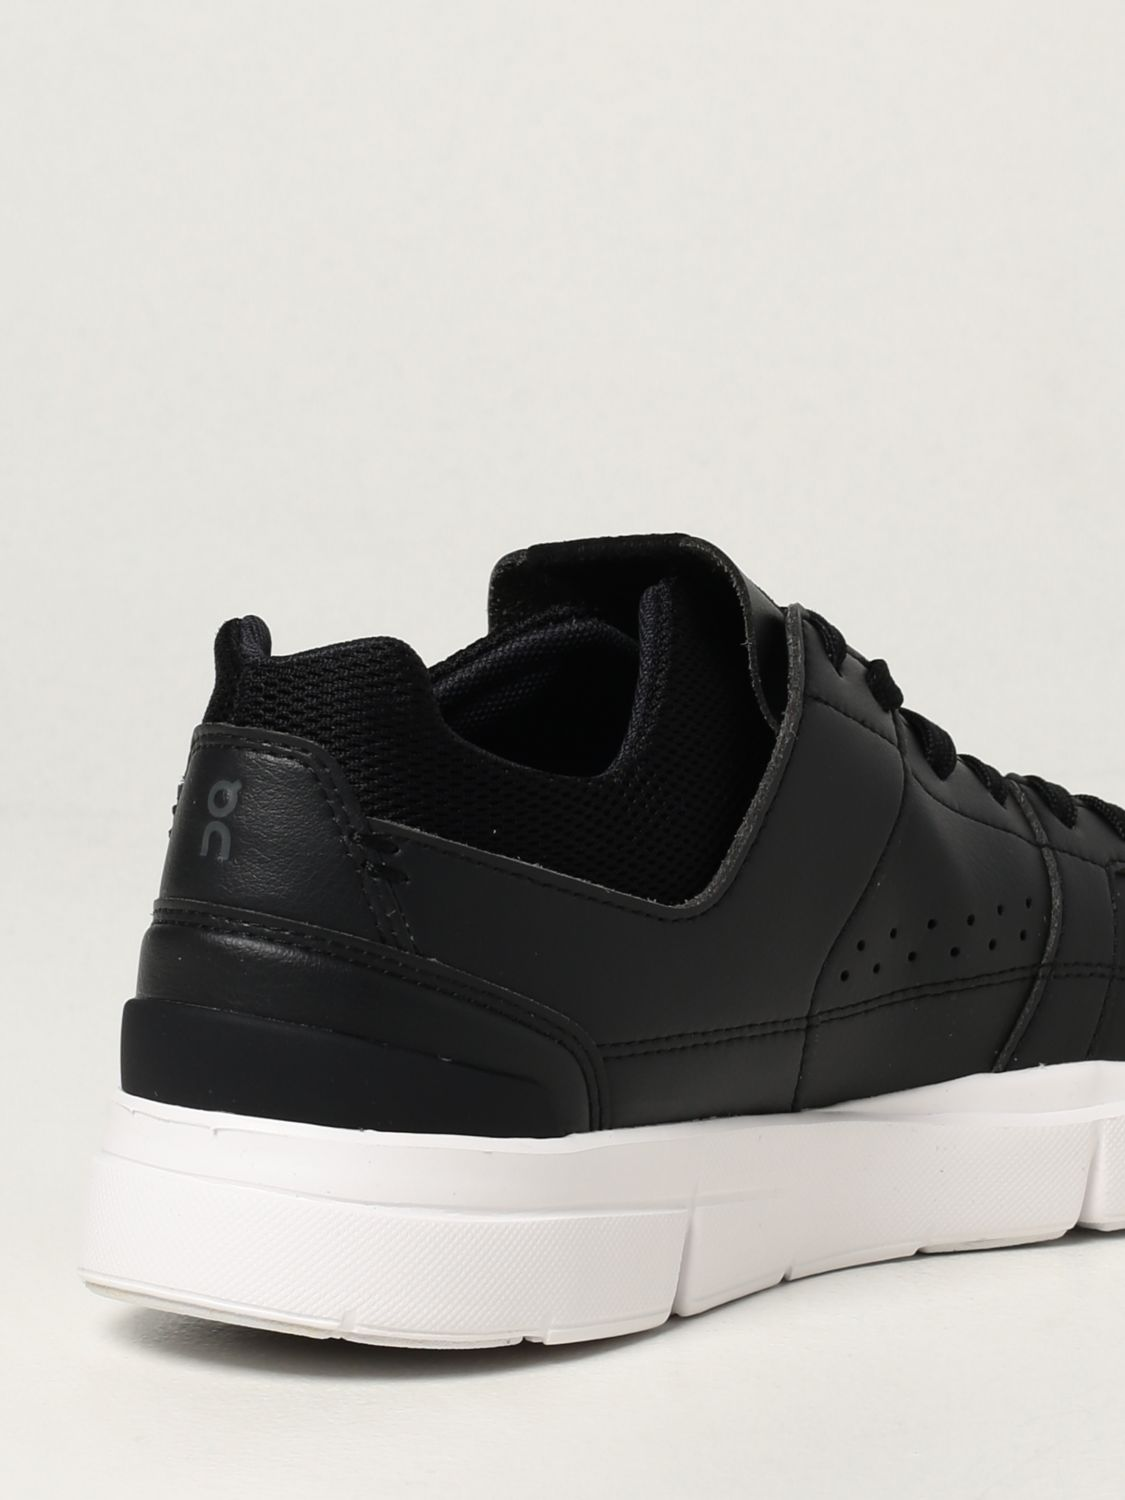 Sneakers The Roger: Sneakers Clubhouse in pelle ecologica e mesh nero 3